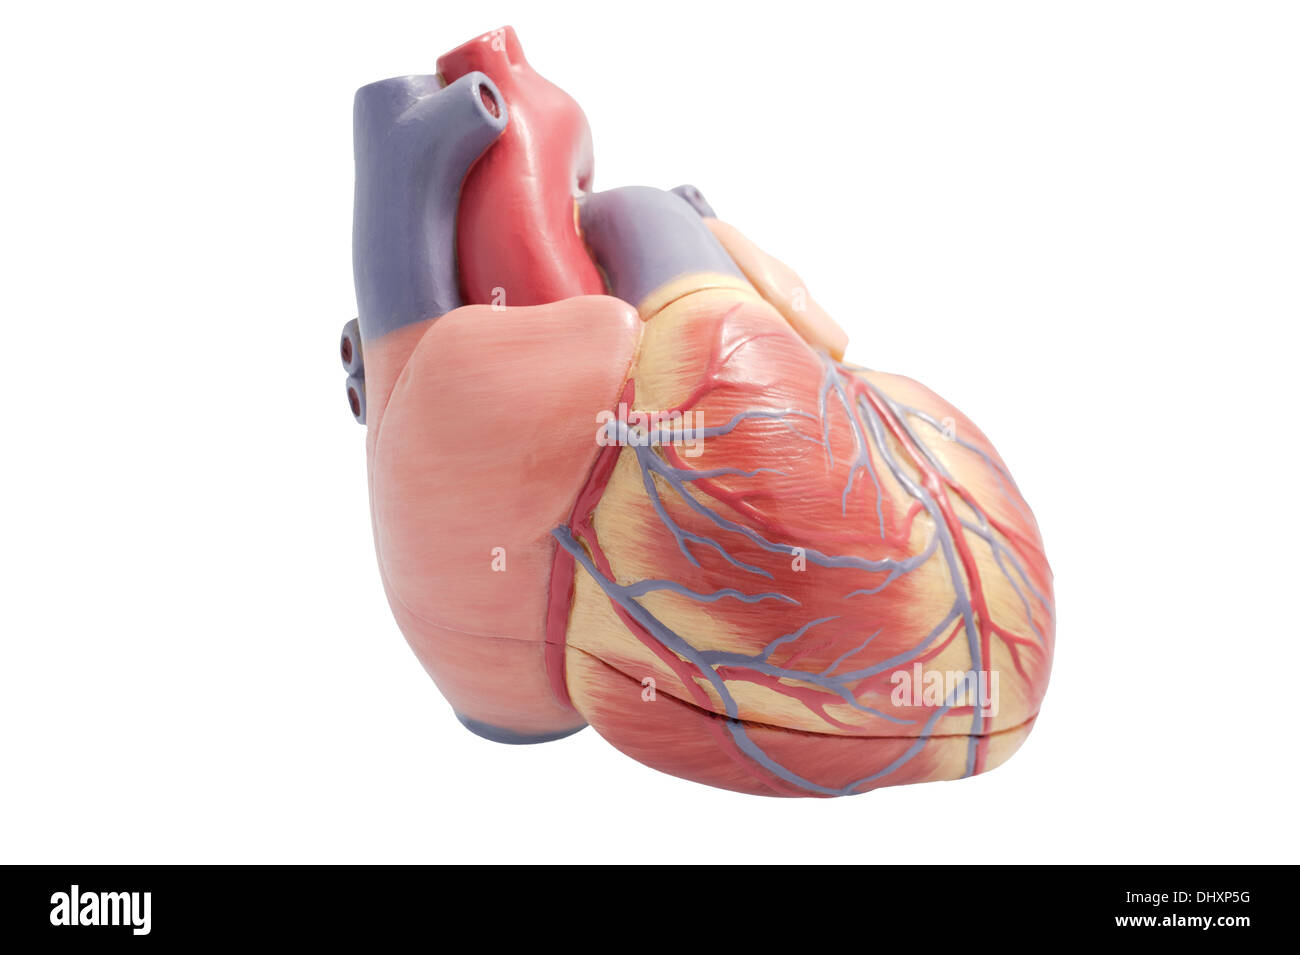 Artificial model of a human heart  Right ventricle towards